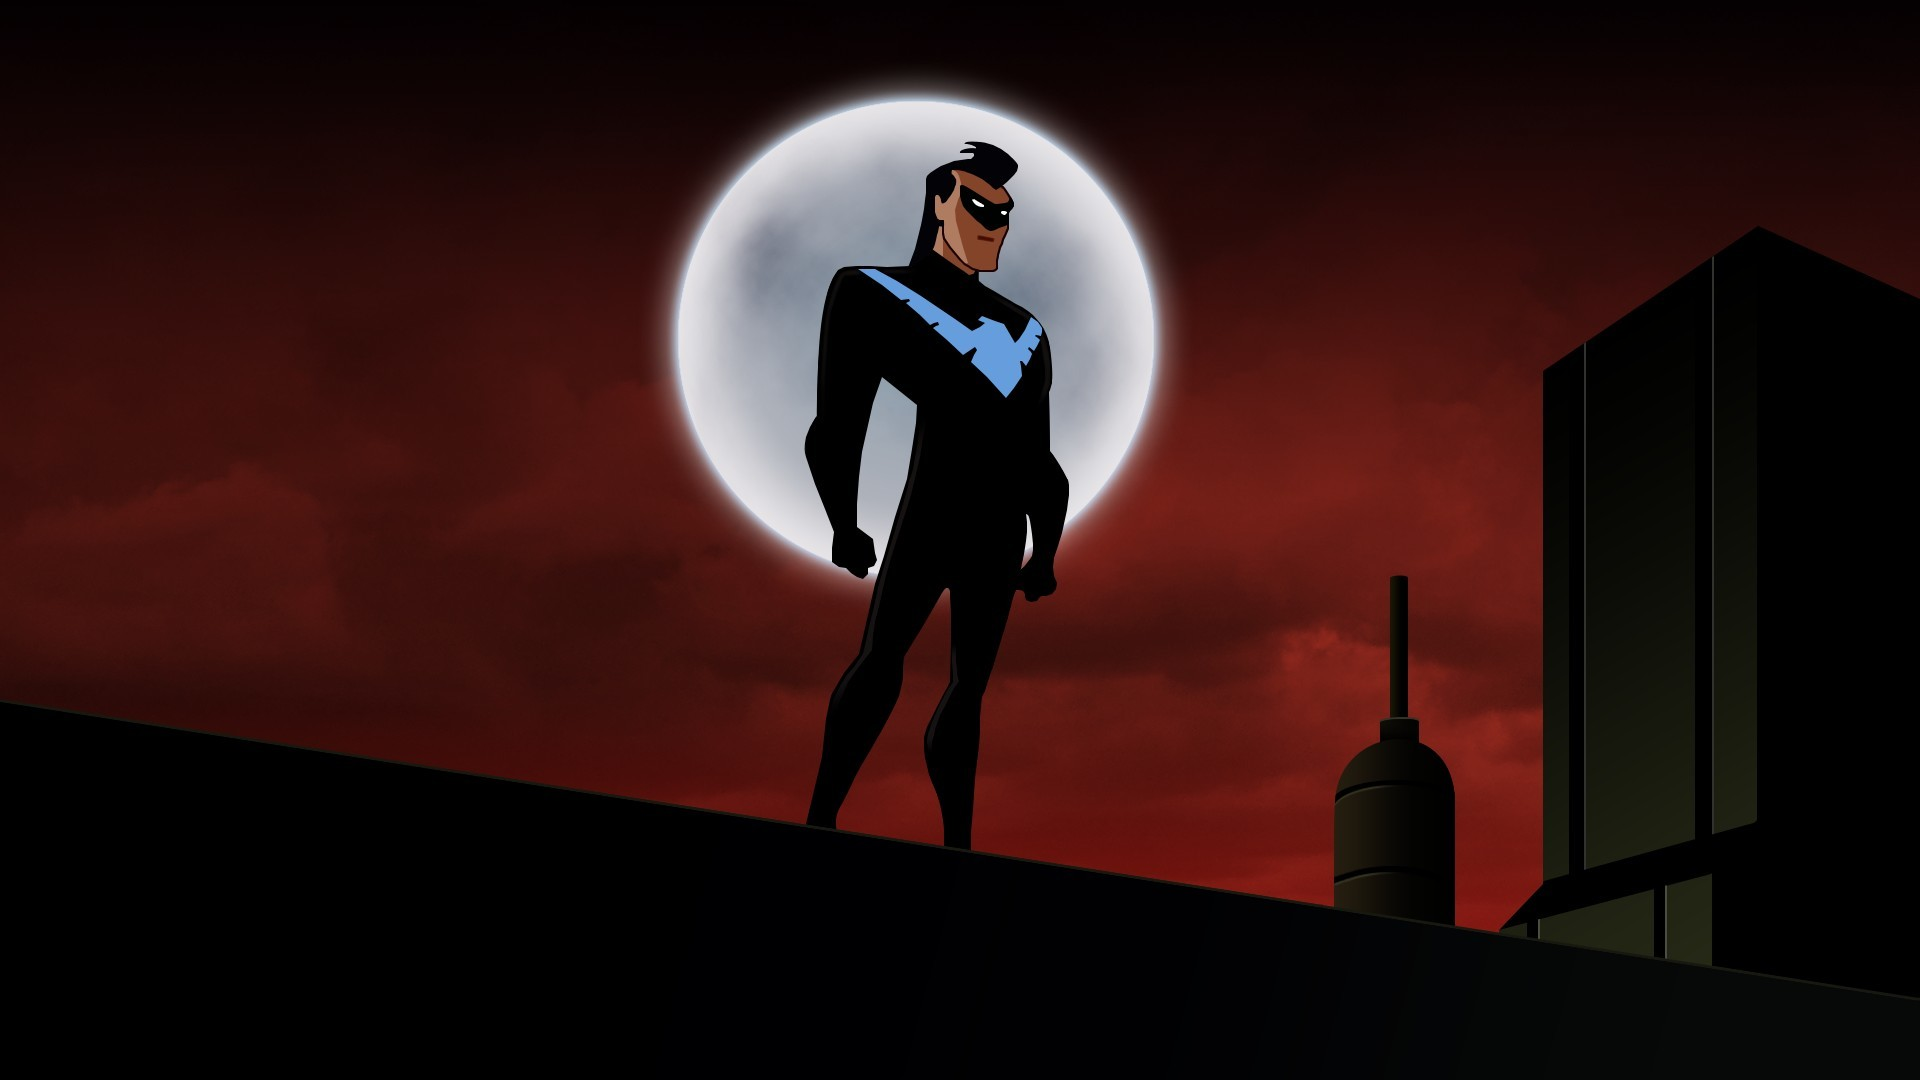 Res: 1920x1080, Dick Grayson, Nightwing, DC Comics, Warner Brothers, Batman: The Animated  Series